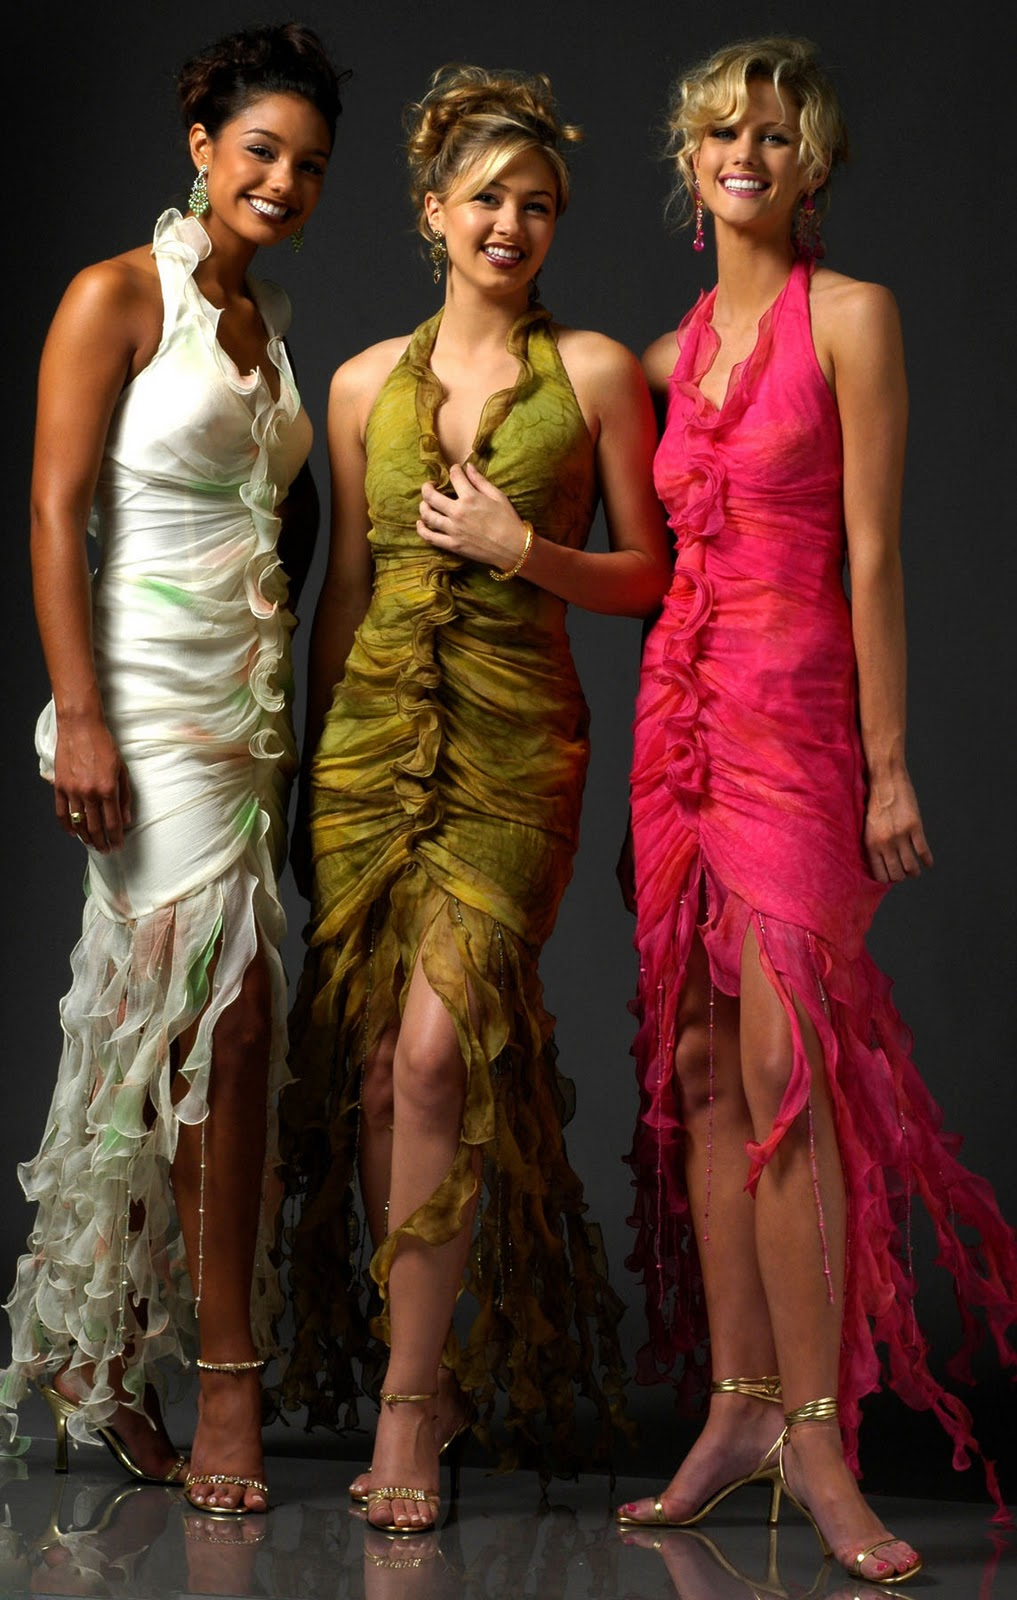 Eye On Me: DO YOU KNOW!! How to choose the right prom dress and suit??